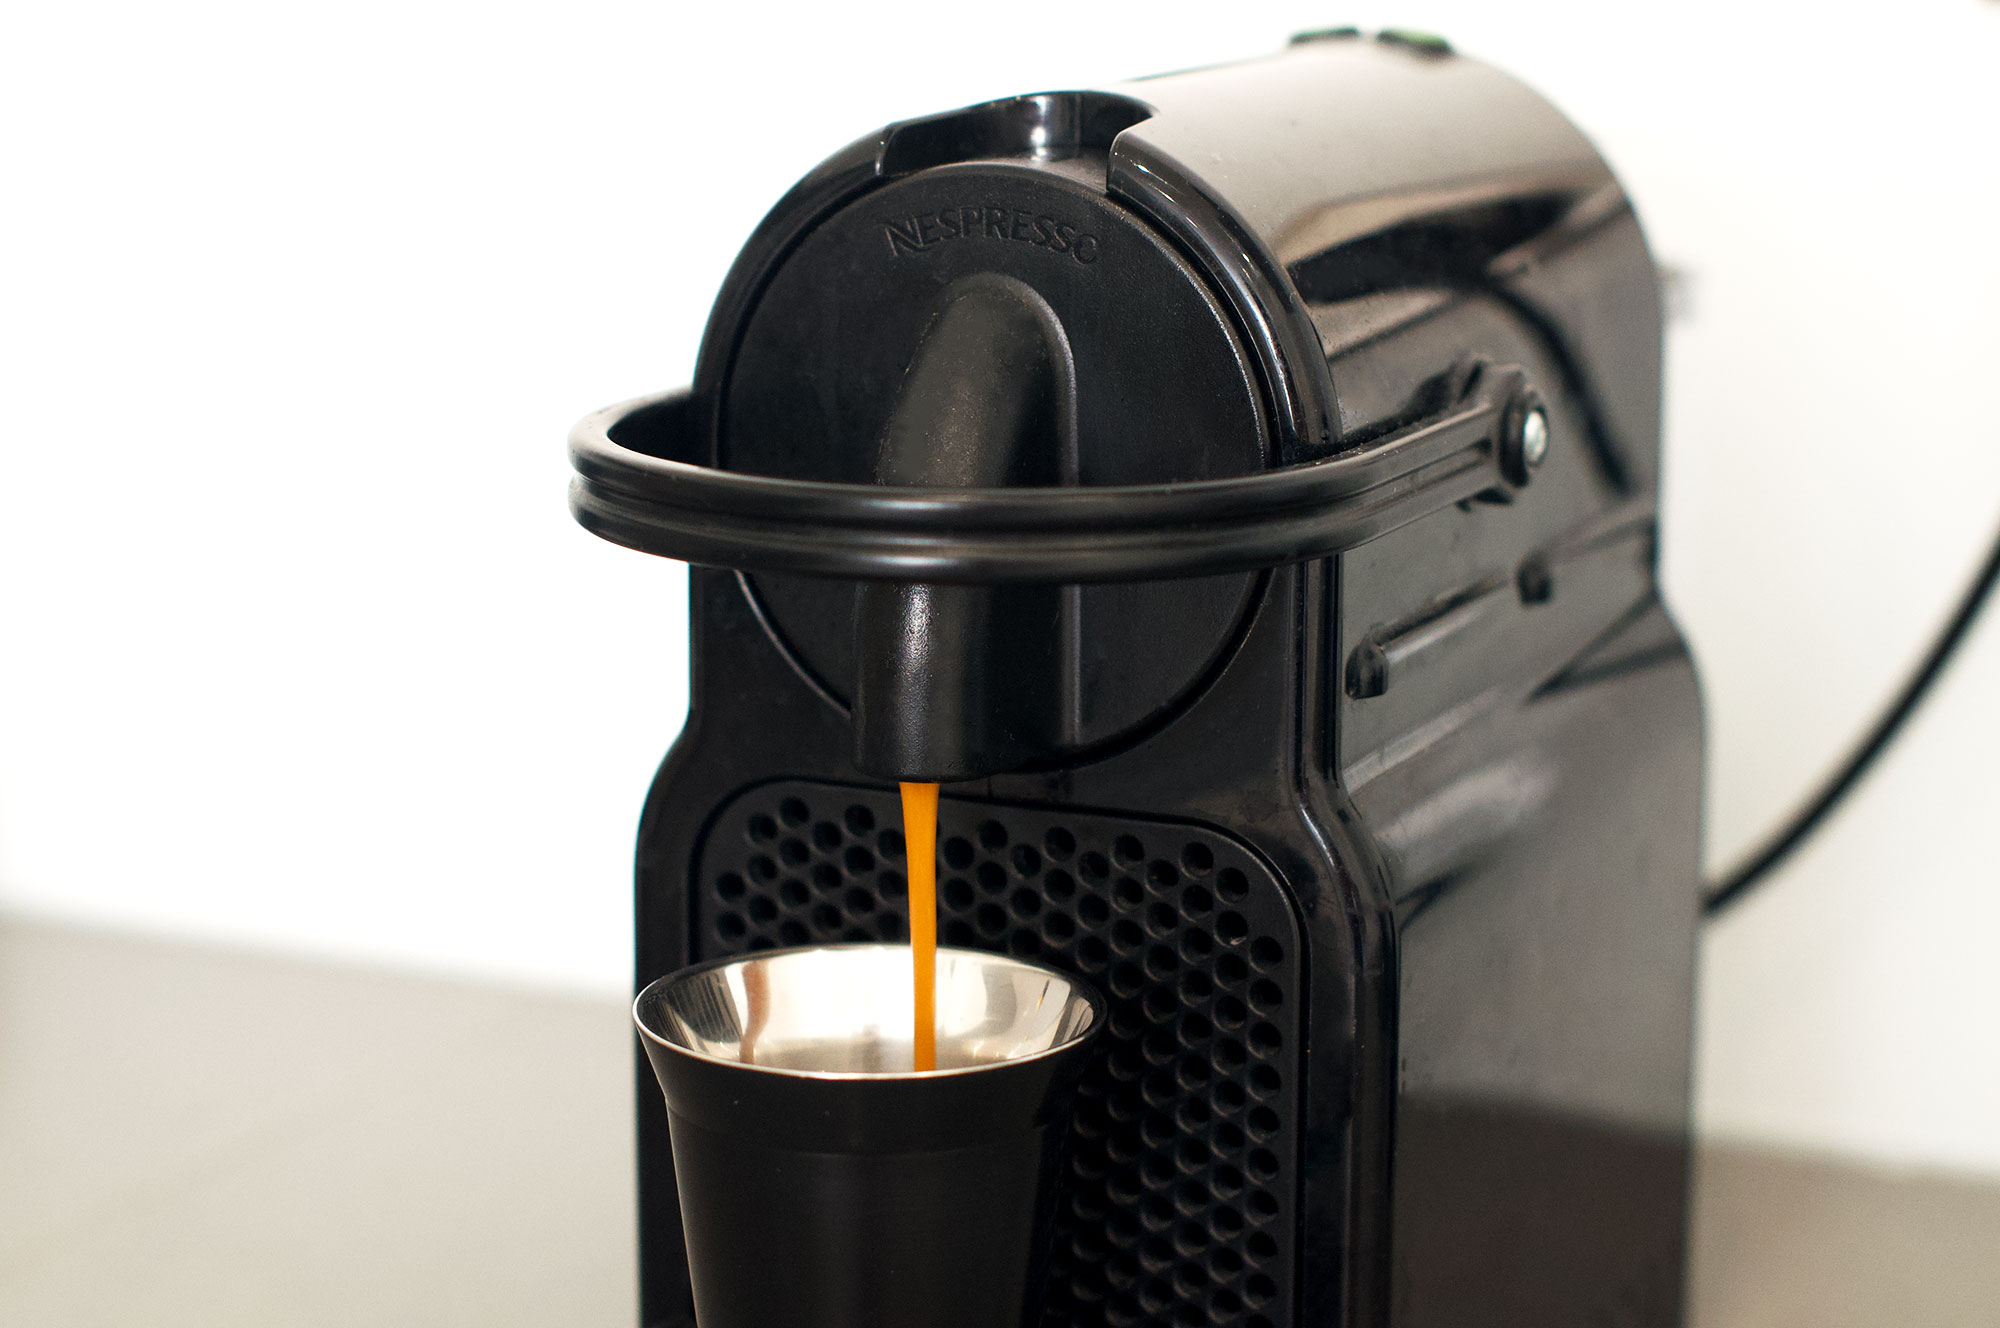 Nespresso Inissia machine pouring espresso cup using 'palermo' capsule